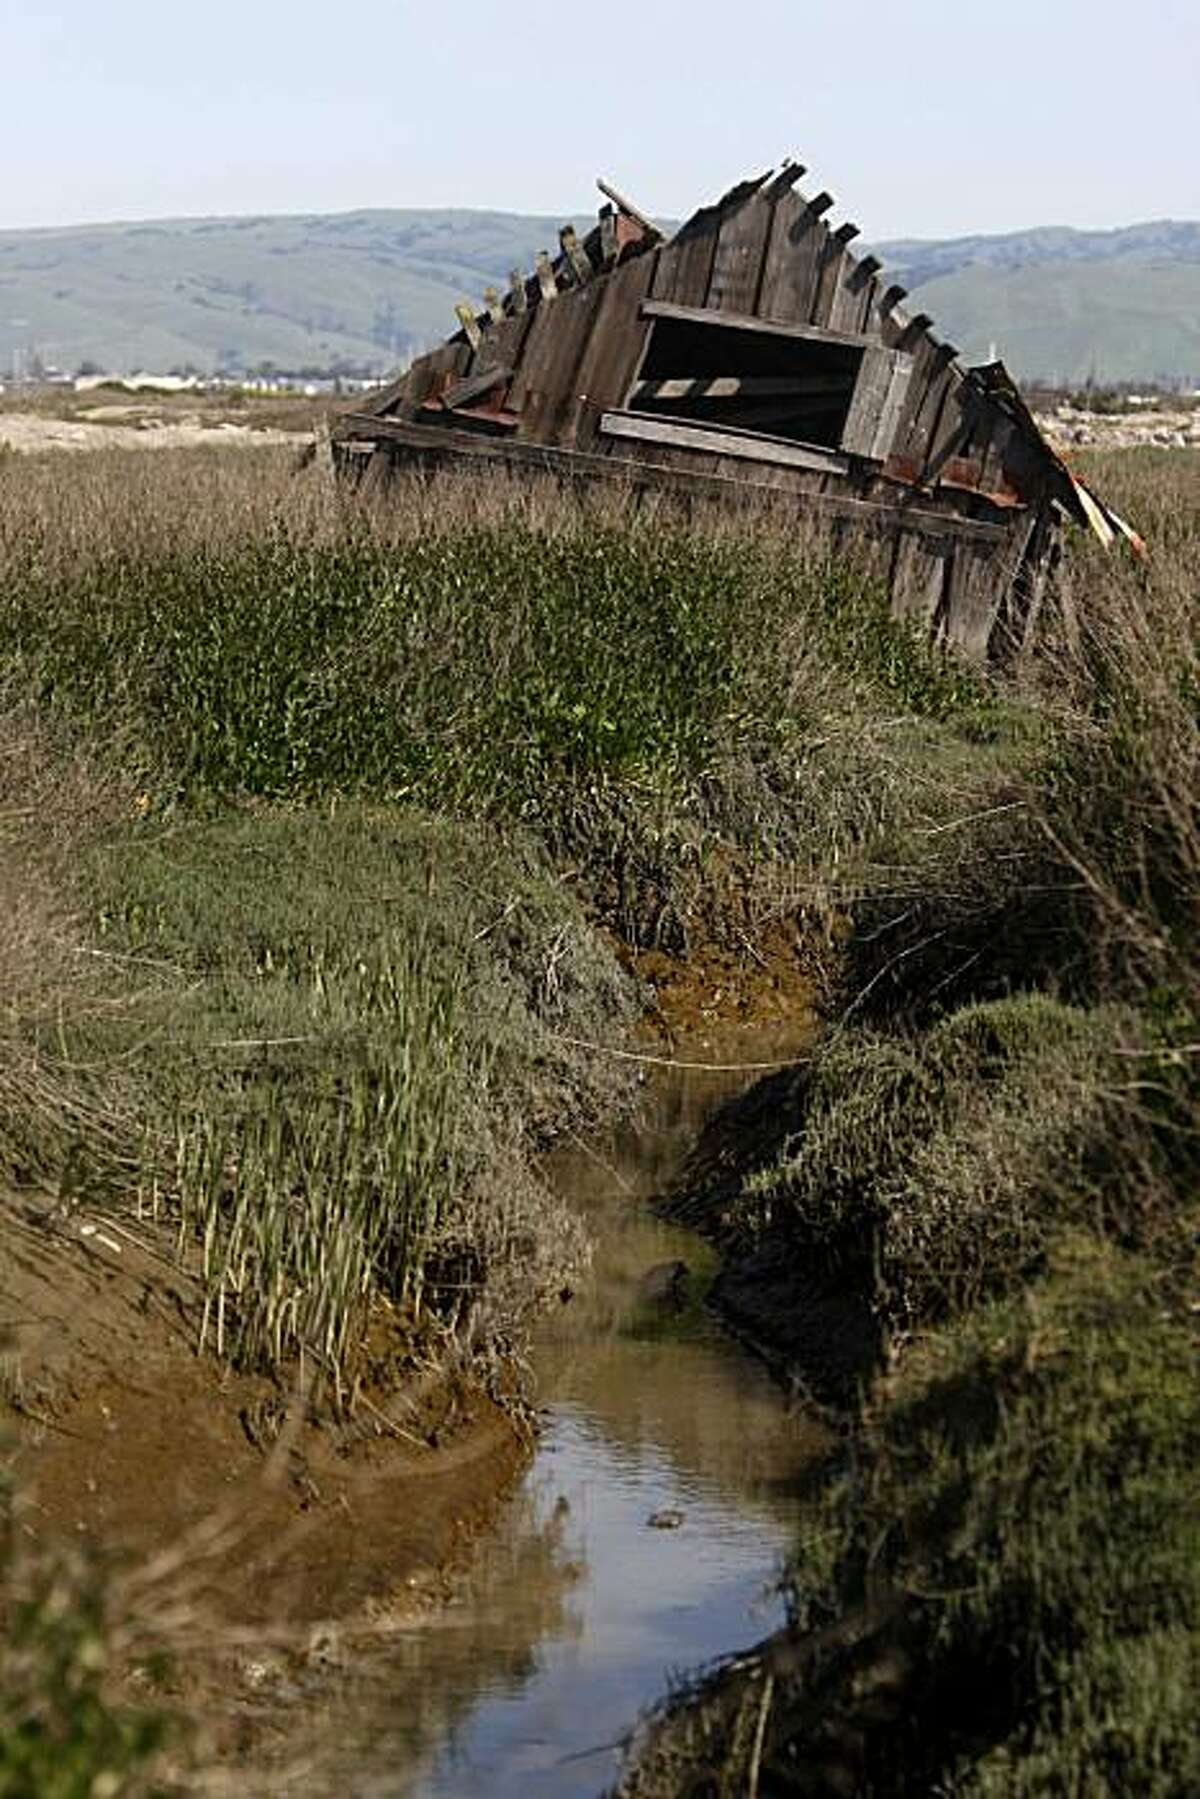 An historic building in Drawbridge Calif., an abandoned fishing and hunting community located on the Don Edwards San Francisco Bay National Wildlife Refuge near San Jose, is being naturally reclaimed by the south bay salt flats on Tuesday March 23, 2010.